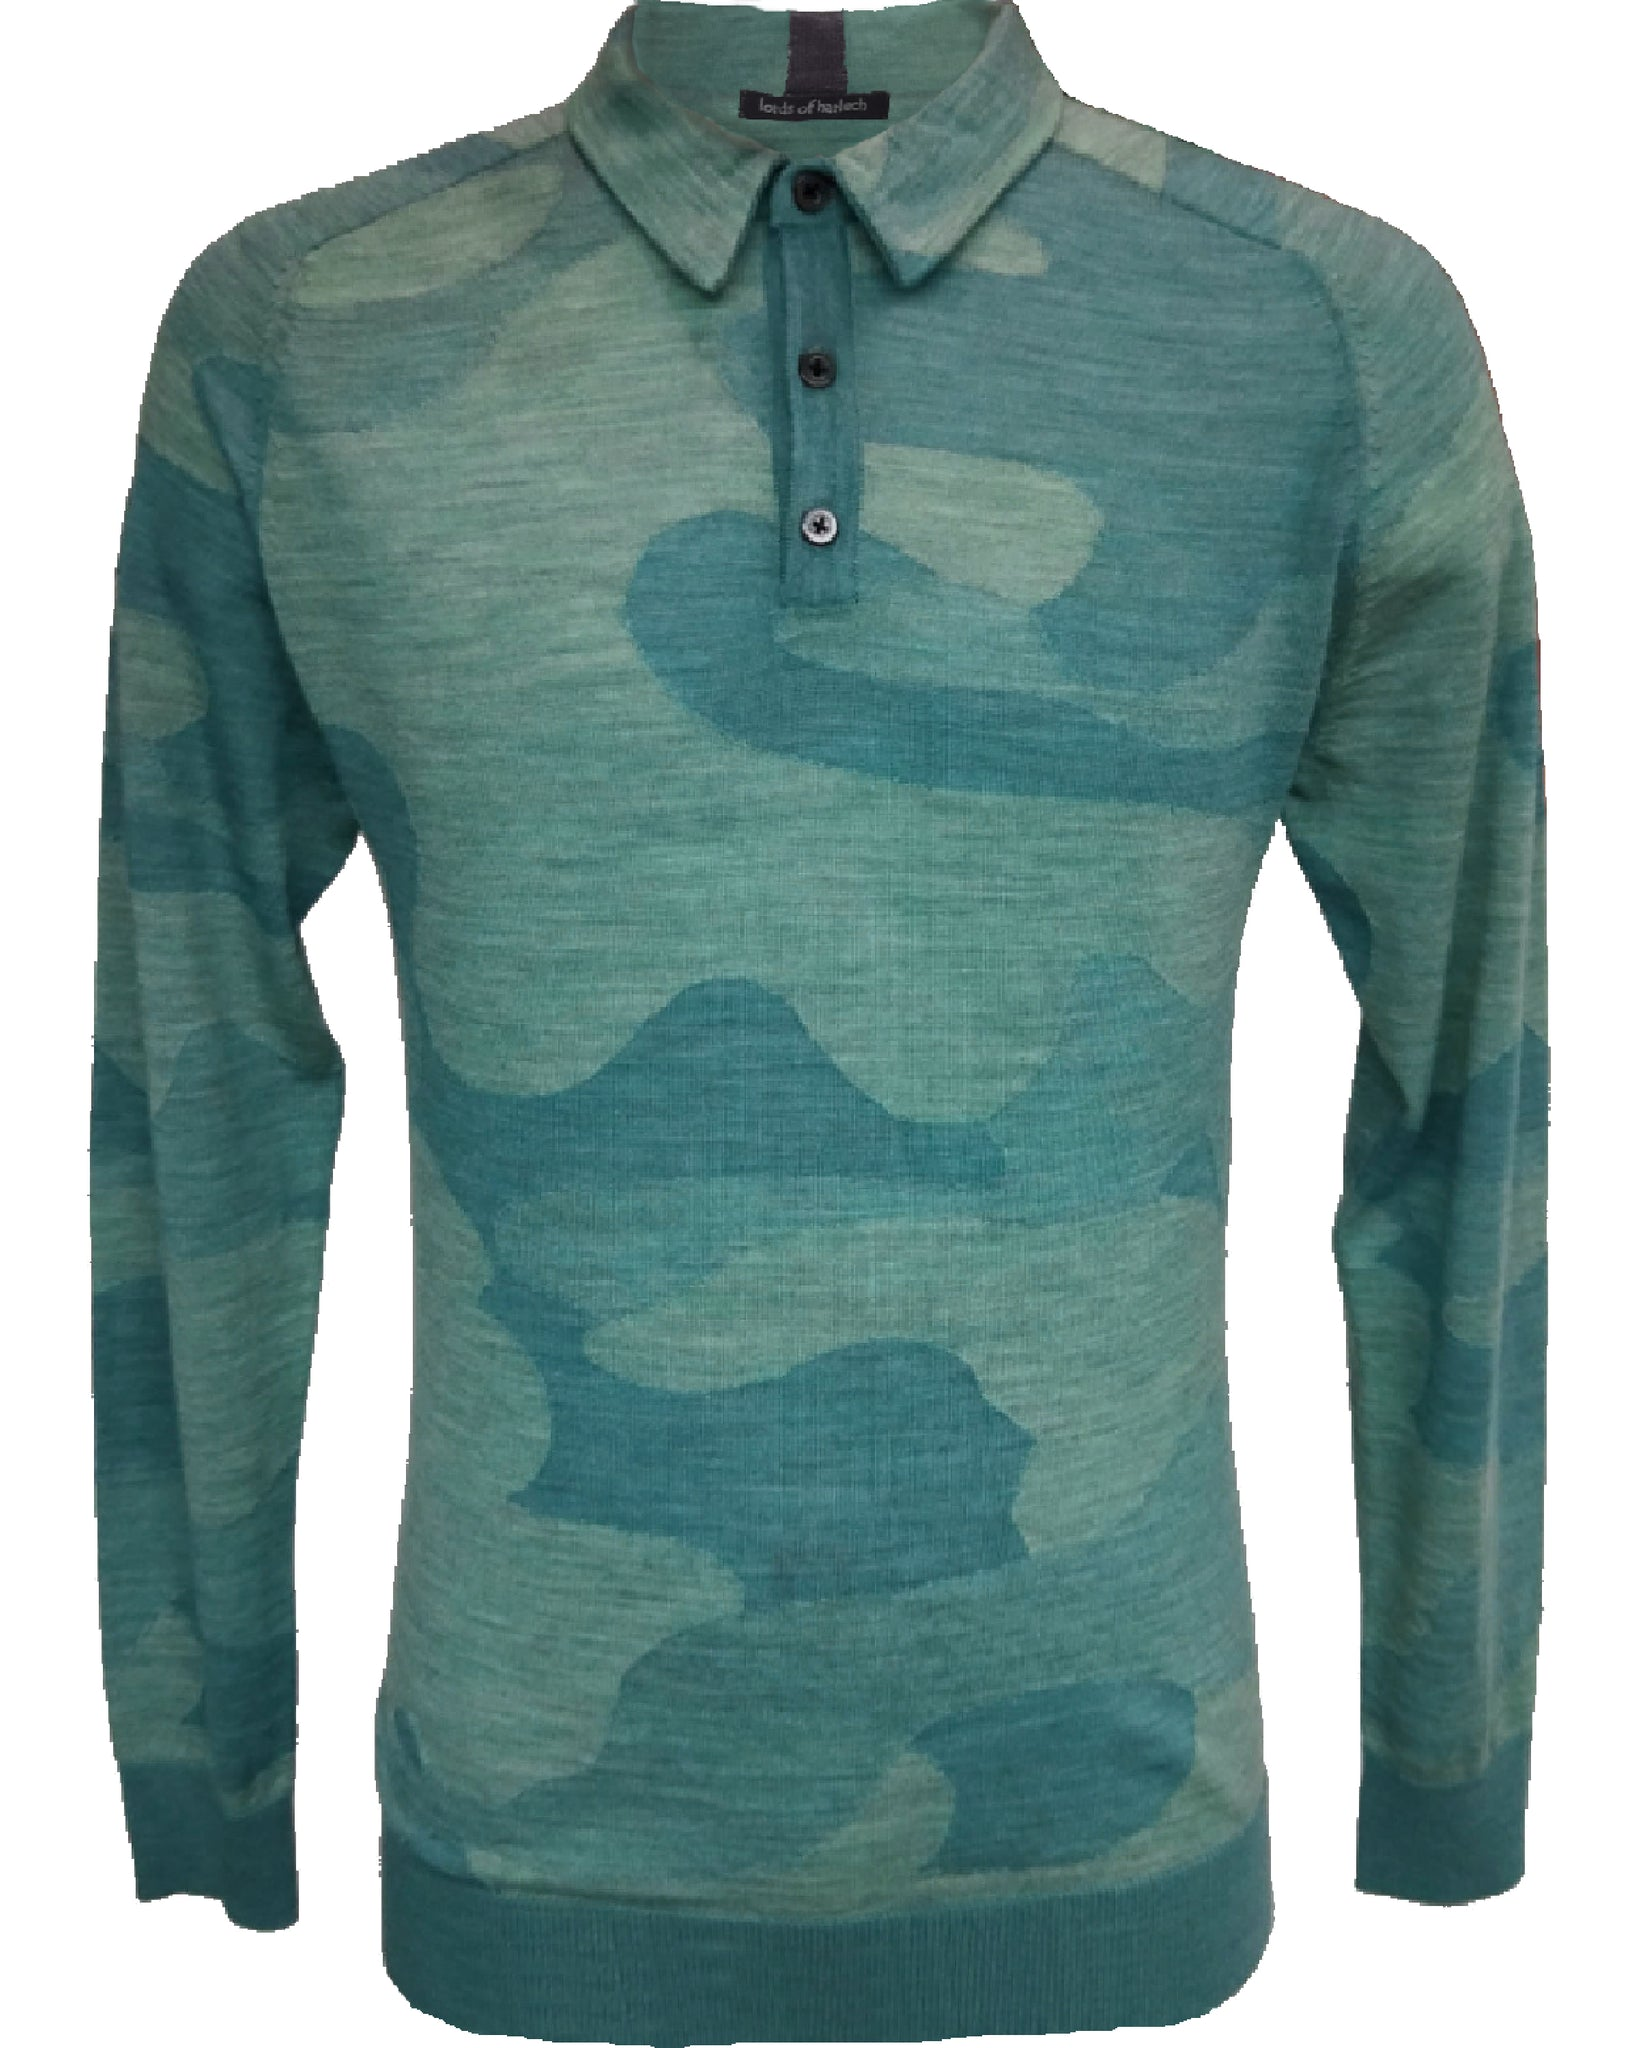 Peter Polo Woolcamo Teal